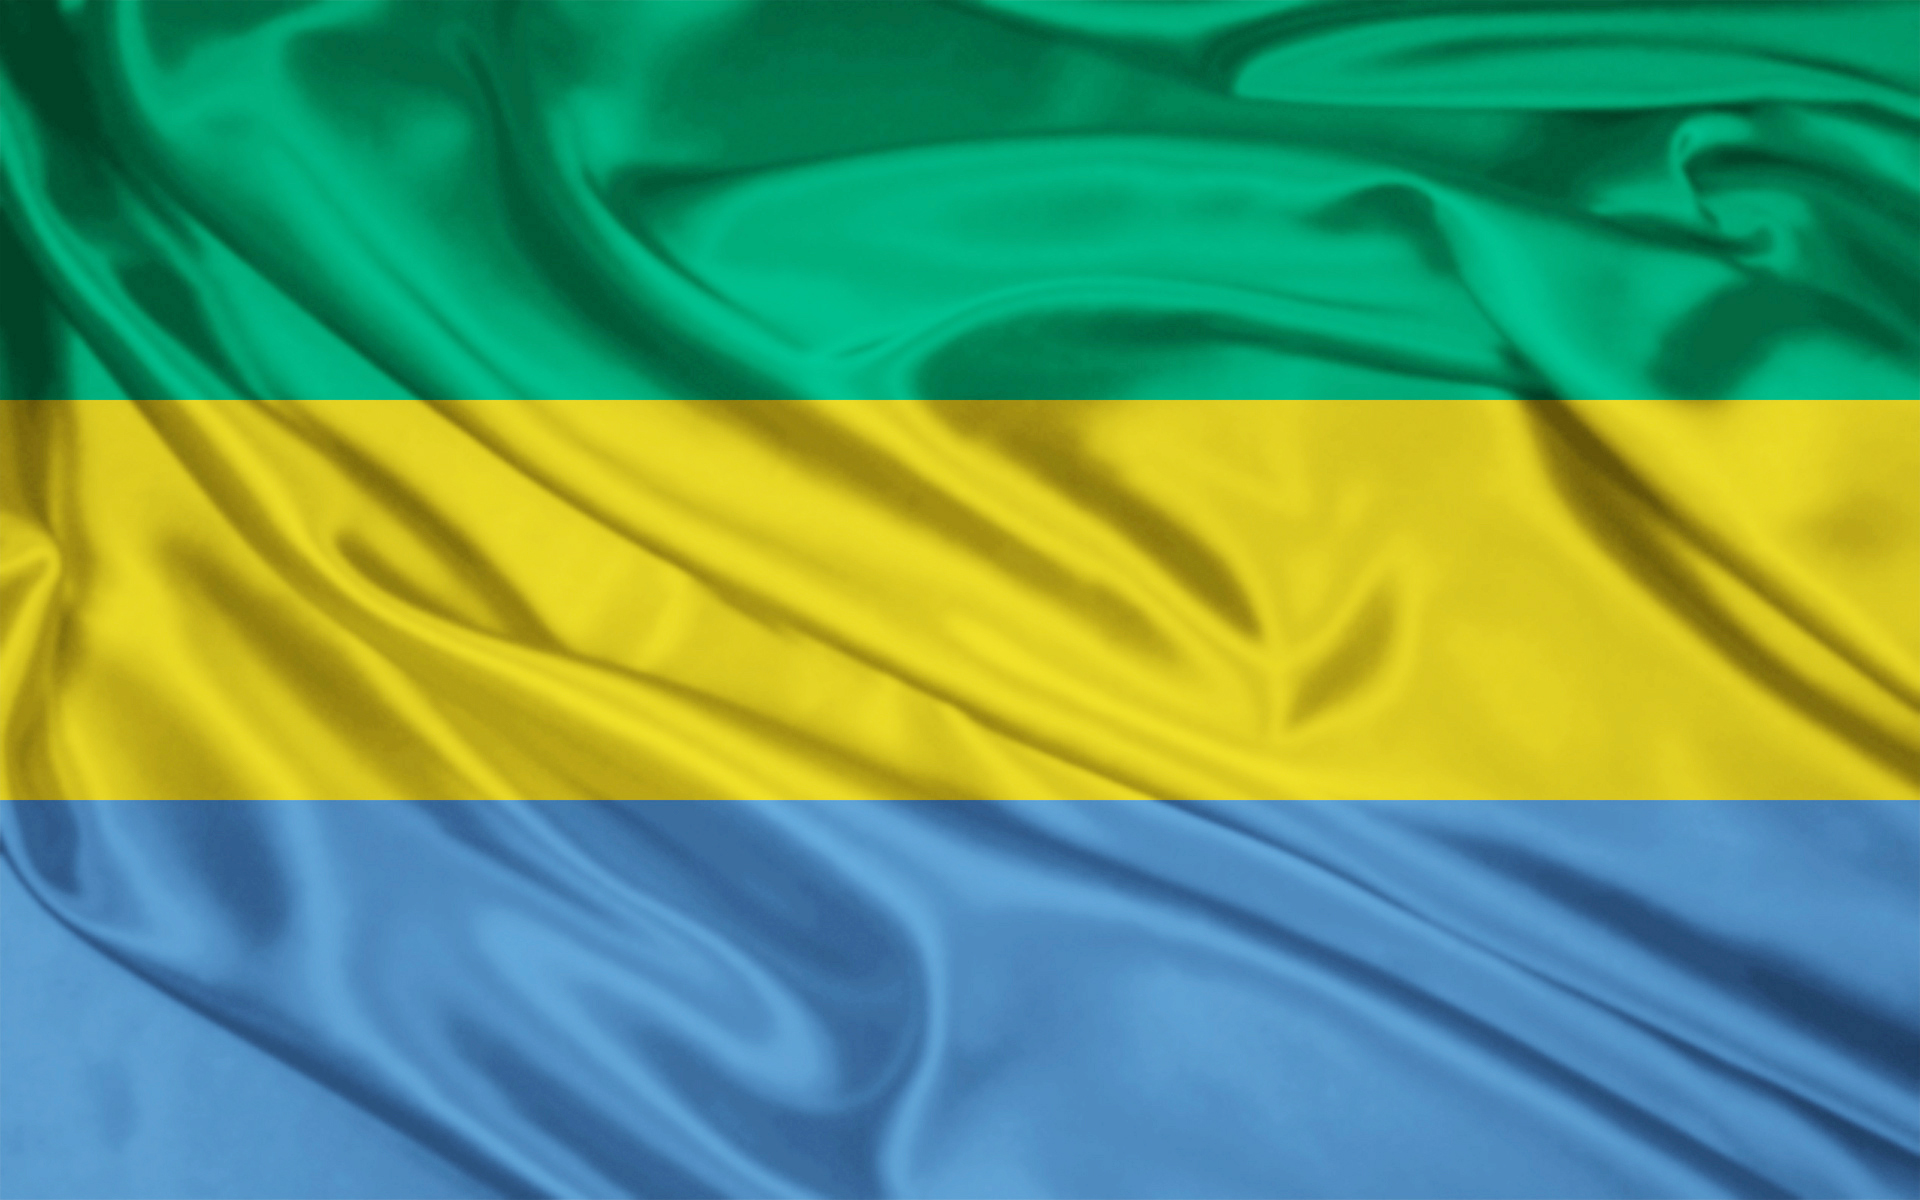 The Flag of Gabon! Green represents the forest, yellow represents